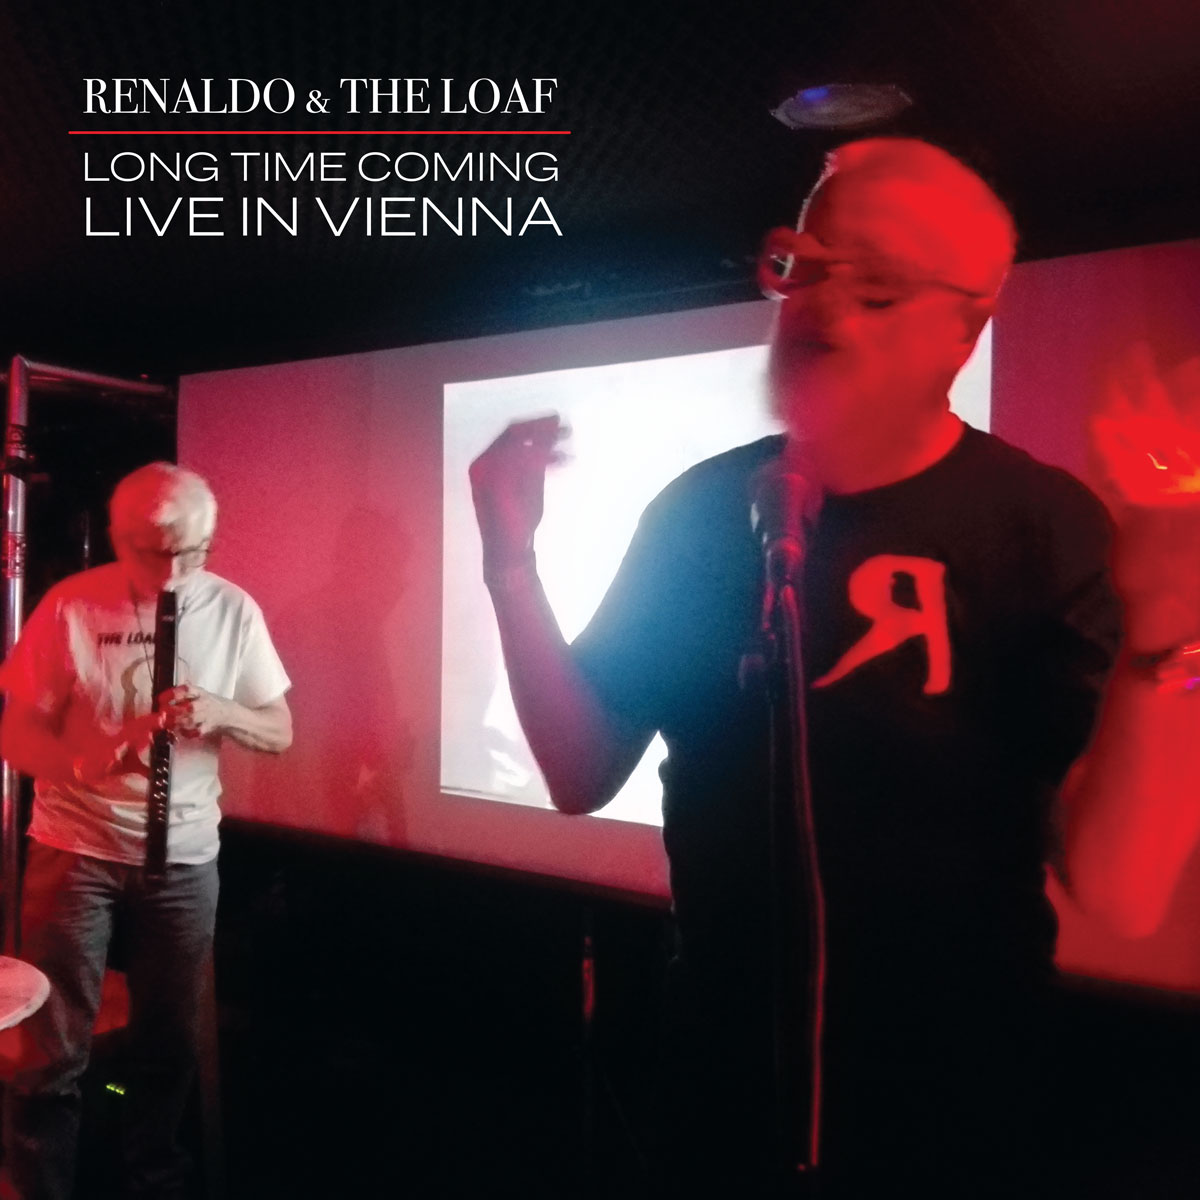 Renaldo & Loaf - Long Time Coming: Live In Vienna [Record Store Day] (2pk) [RSD Drops 2021]